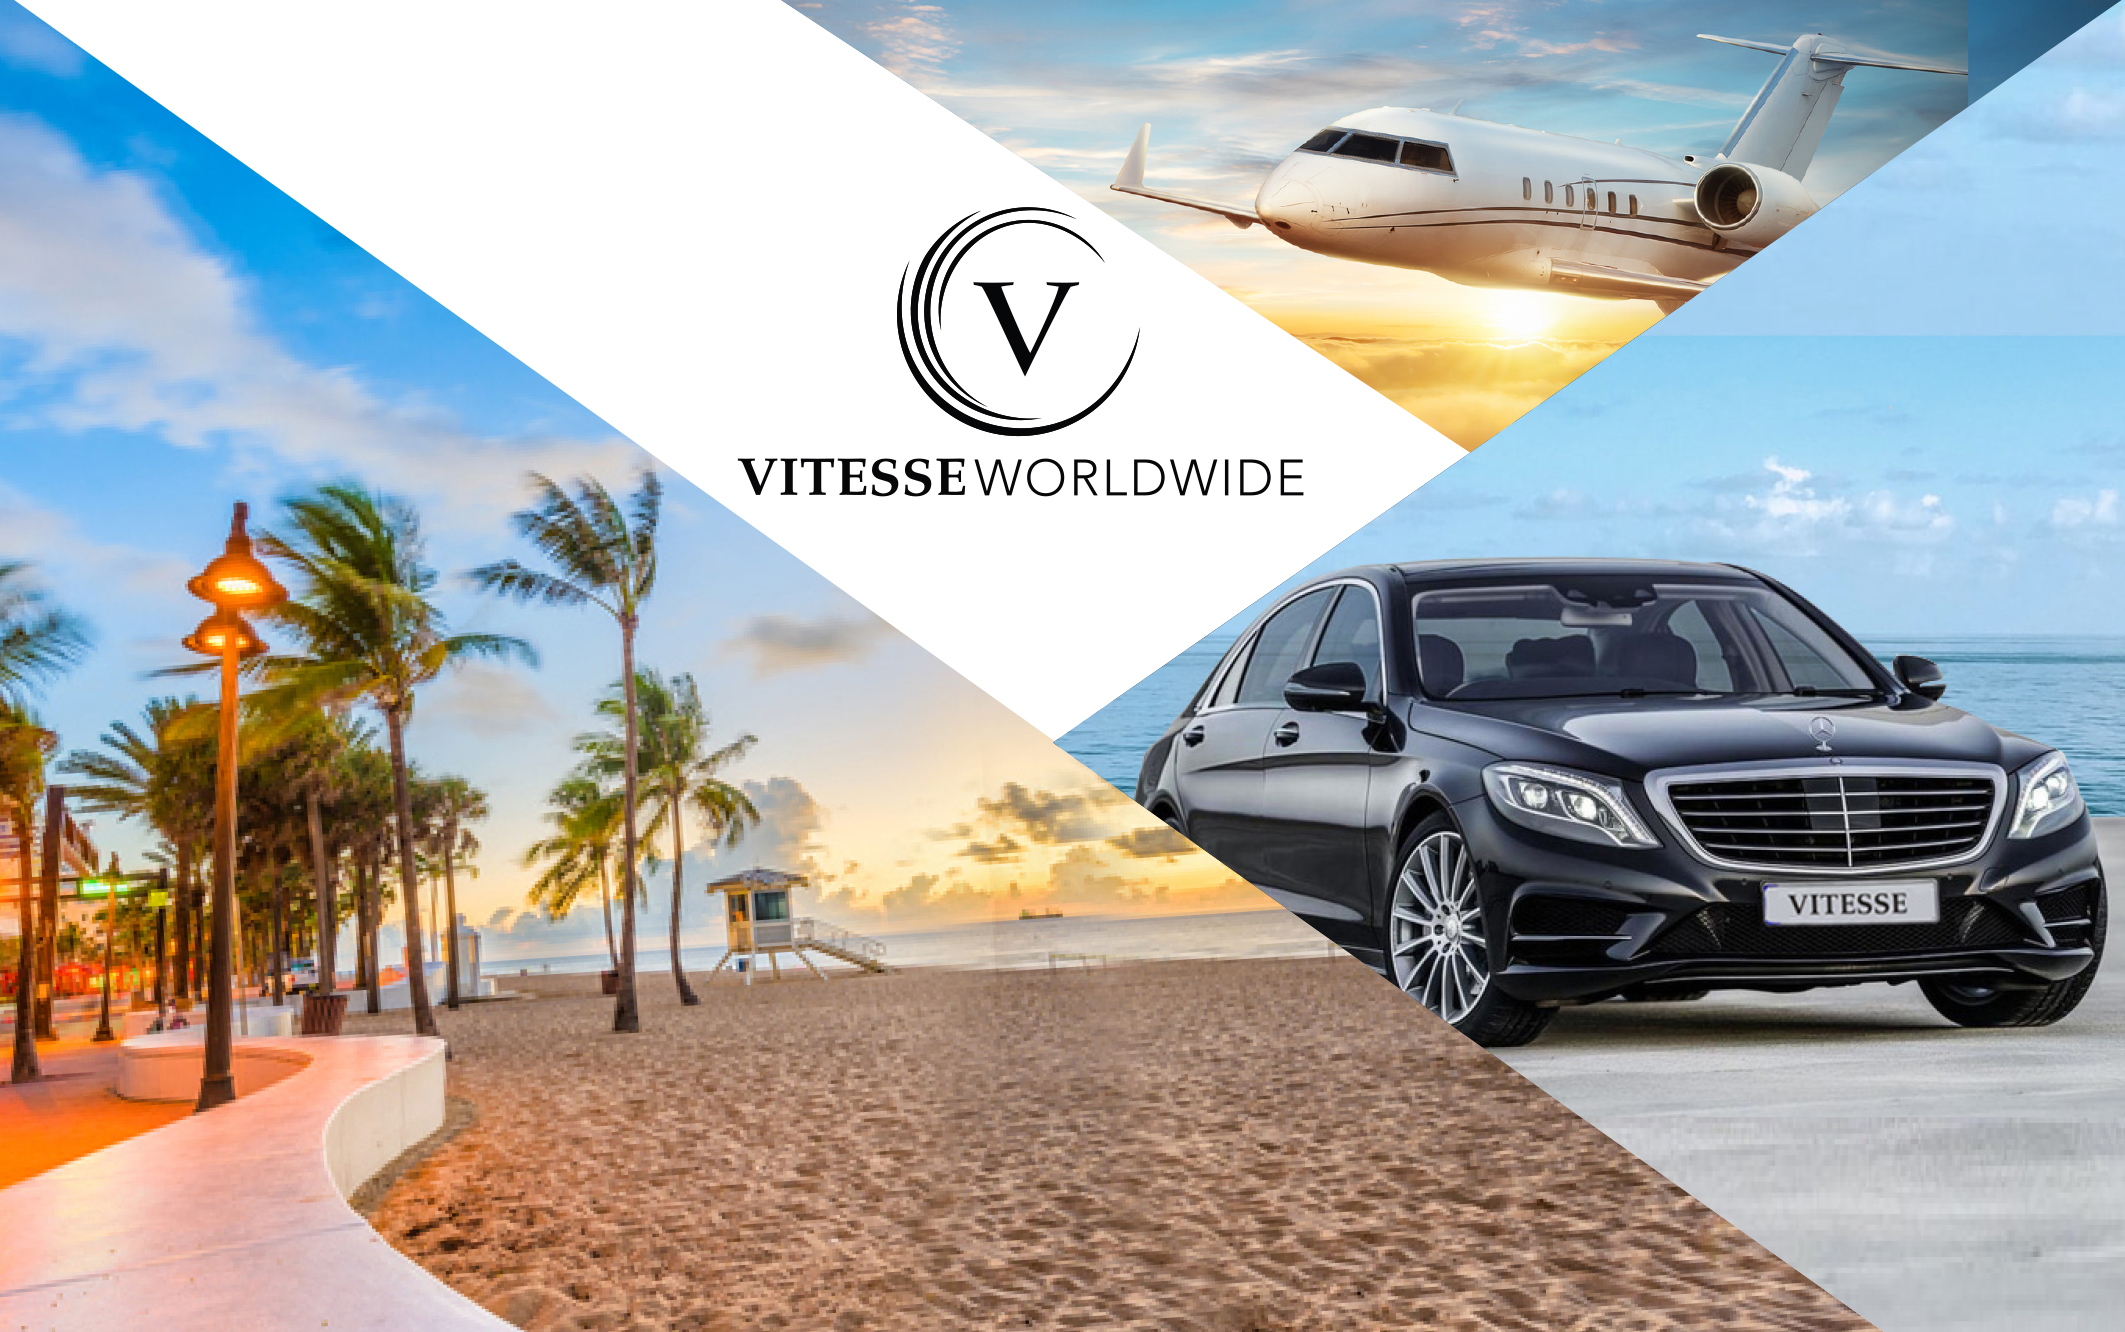 Brrrrr...Time For Snowbirds To Head South! Vitesse Worldwide will take you there by air or ground.